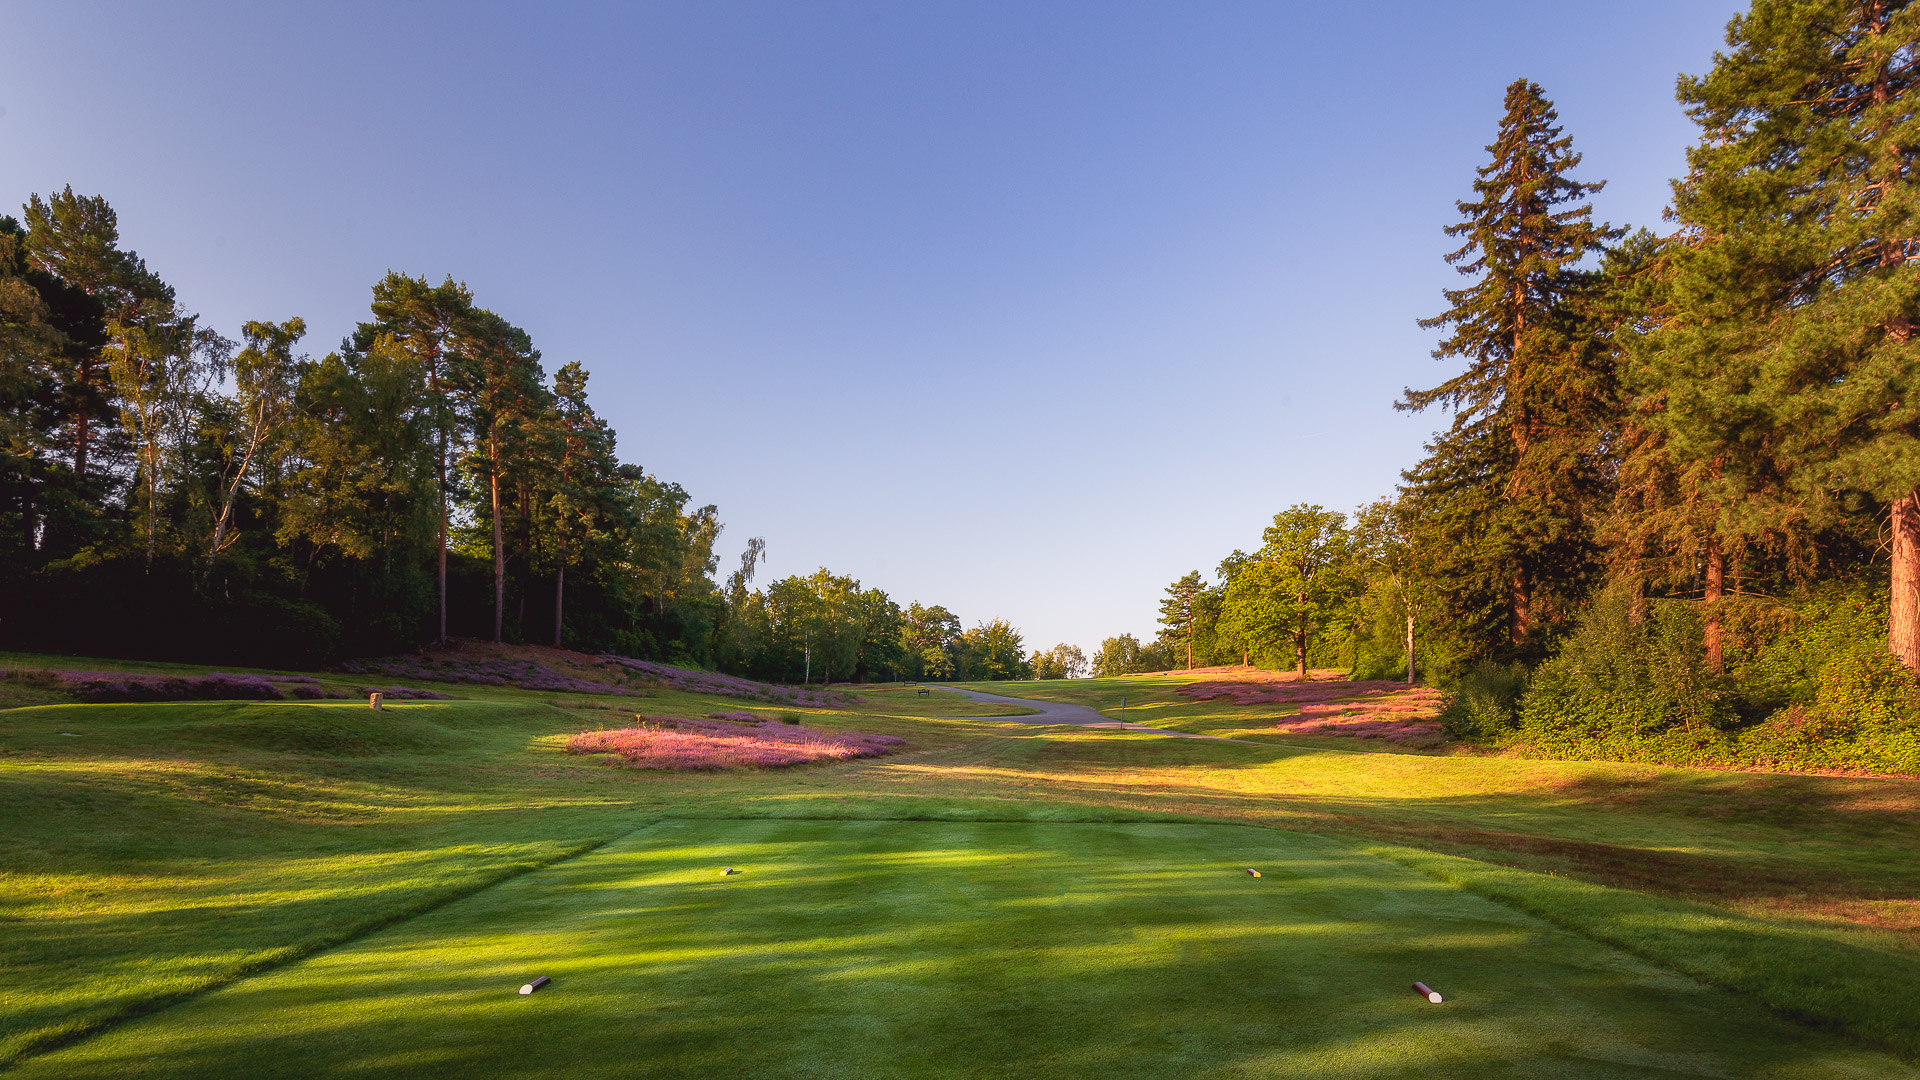 21st-Hole-St-Georges-Hill-Golf-Club-2085-Edit